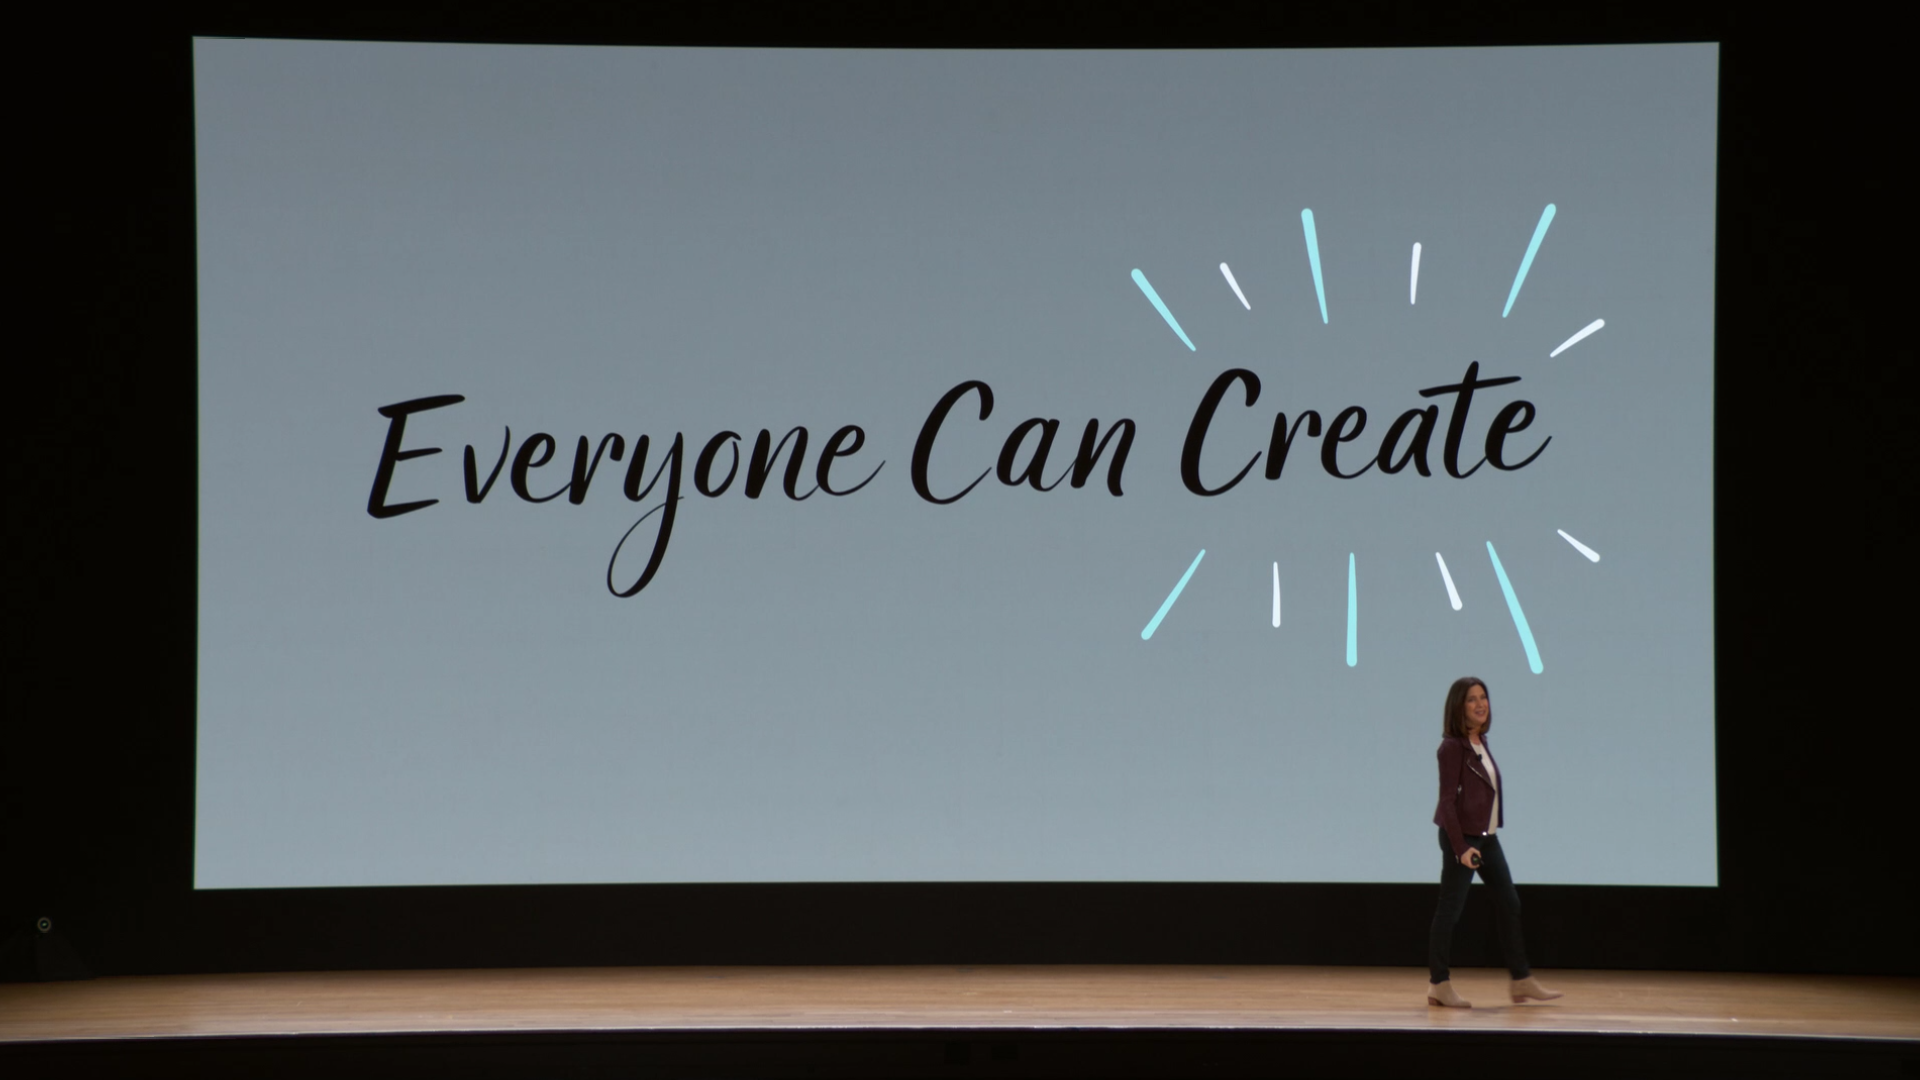 Everyone-Can-Create